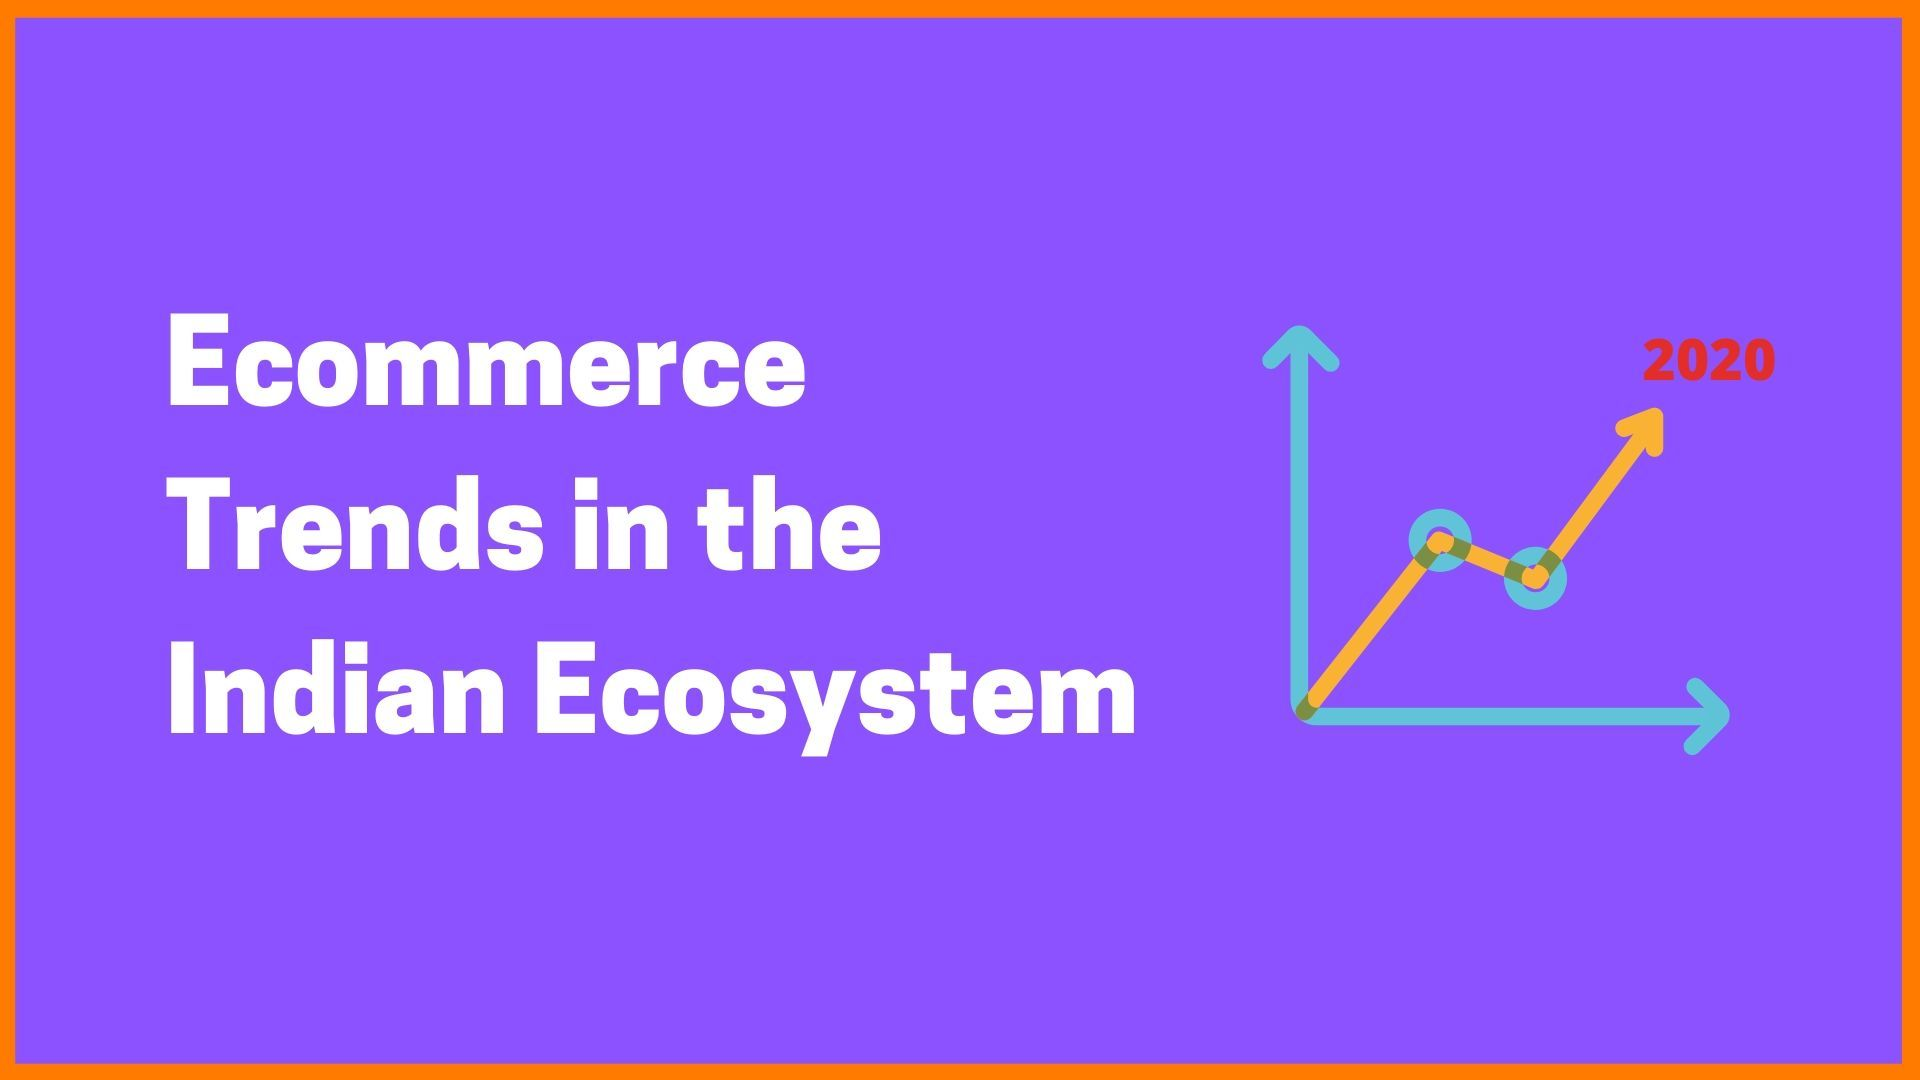 Ecommerce Trends in the Indian Ecosystem